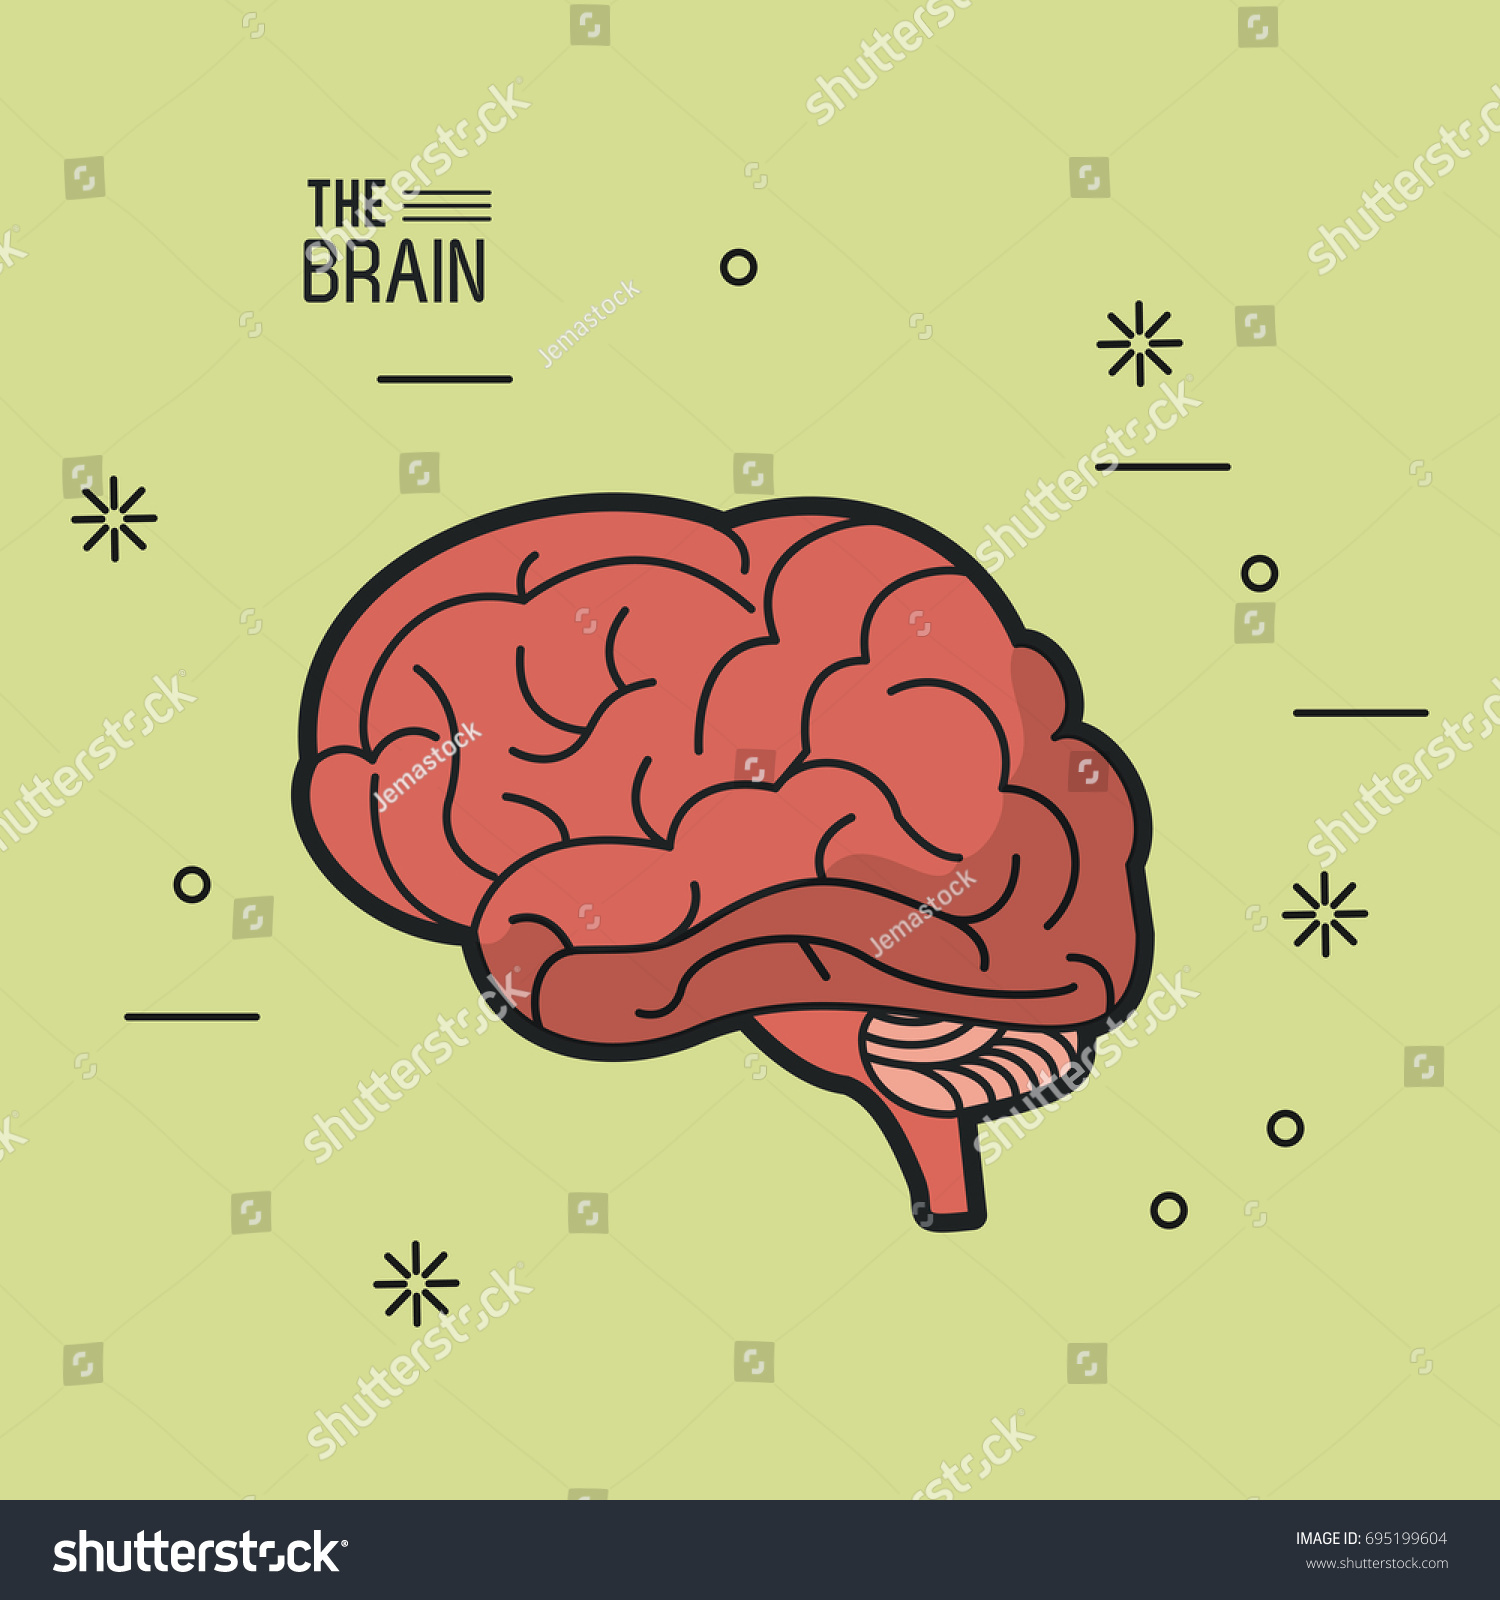 Colorful Poster Brain Light Green Background Stock Vector 695199604 ...